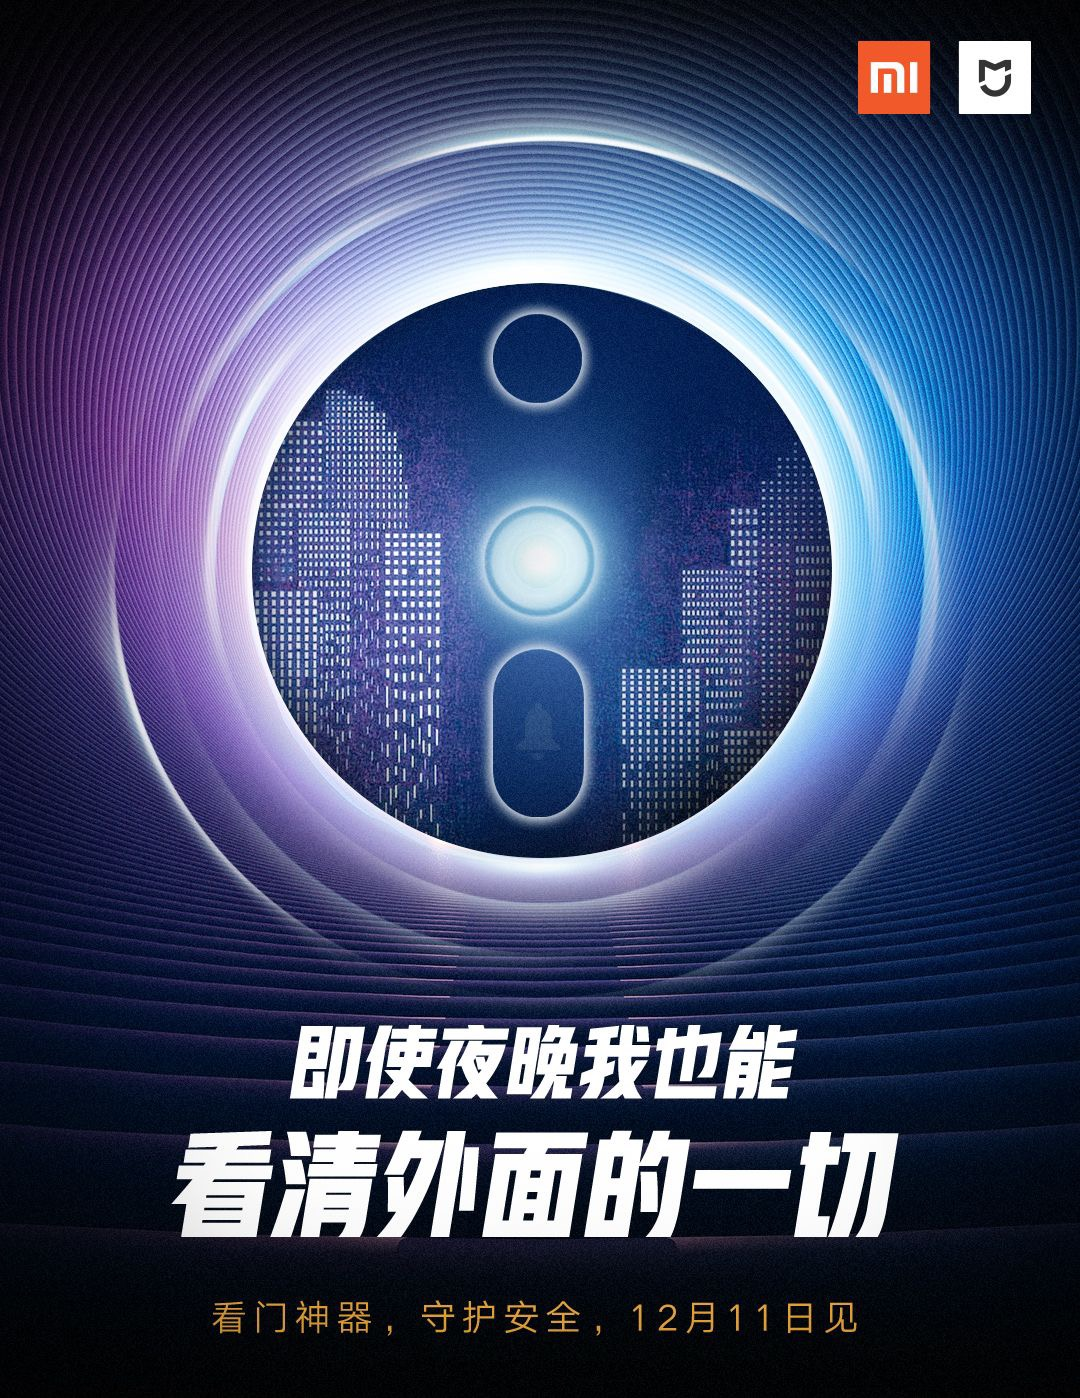 Redmi will present its new doorbell with smart peephole next to the Redmi K30. Xiaomi Addicted News